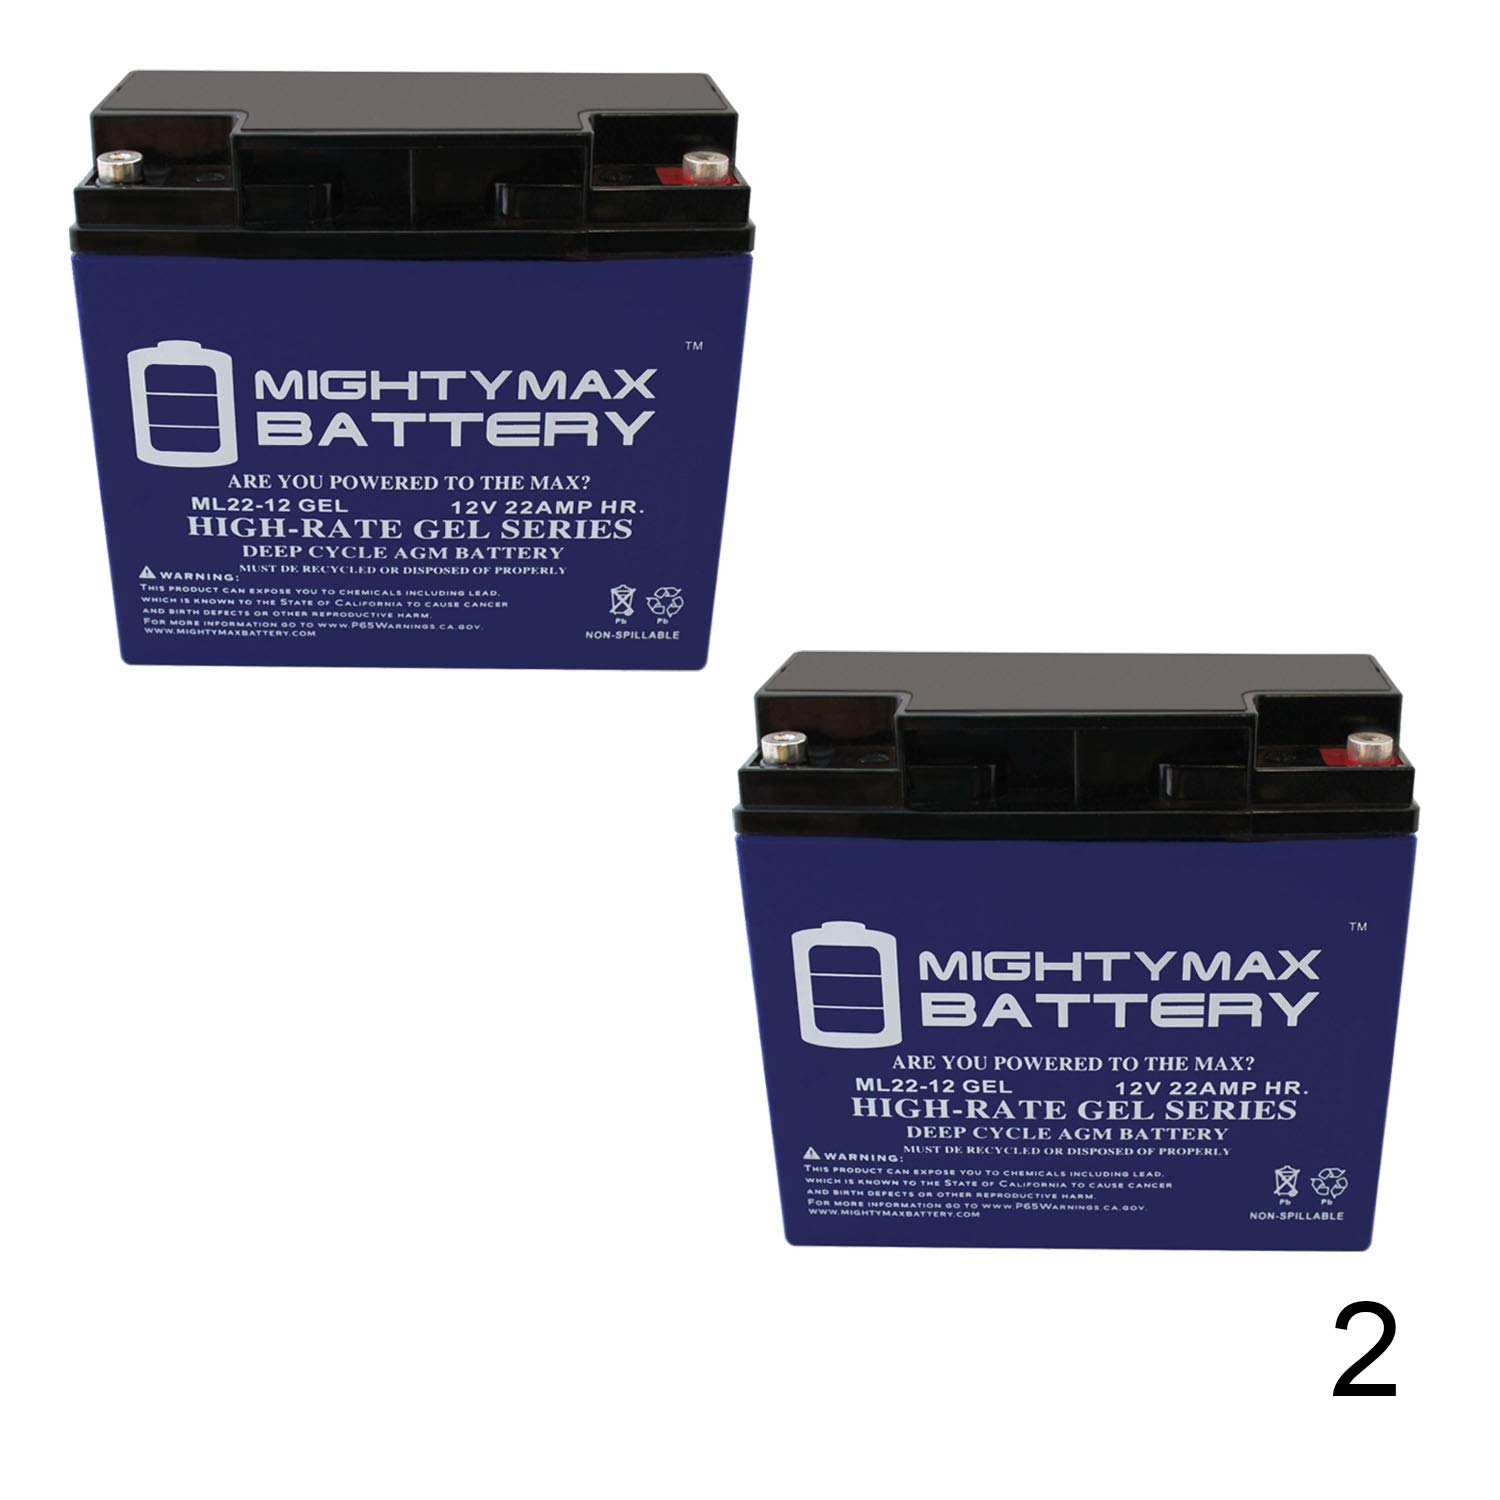 Mighty Max Battery 12V 22AH Gel Battery for Rascal 320, 500 T, 500T - 2 Pack Brand Product by Mighty Max Battery